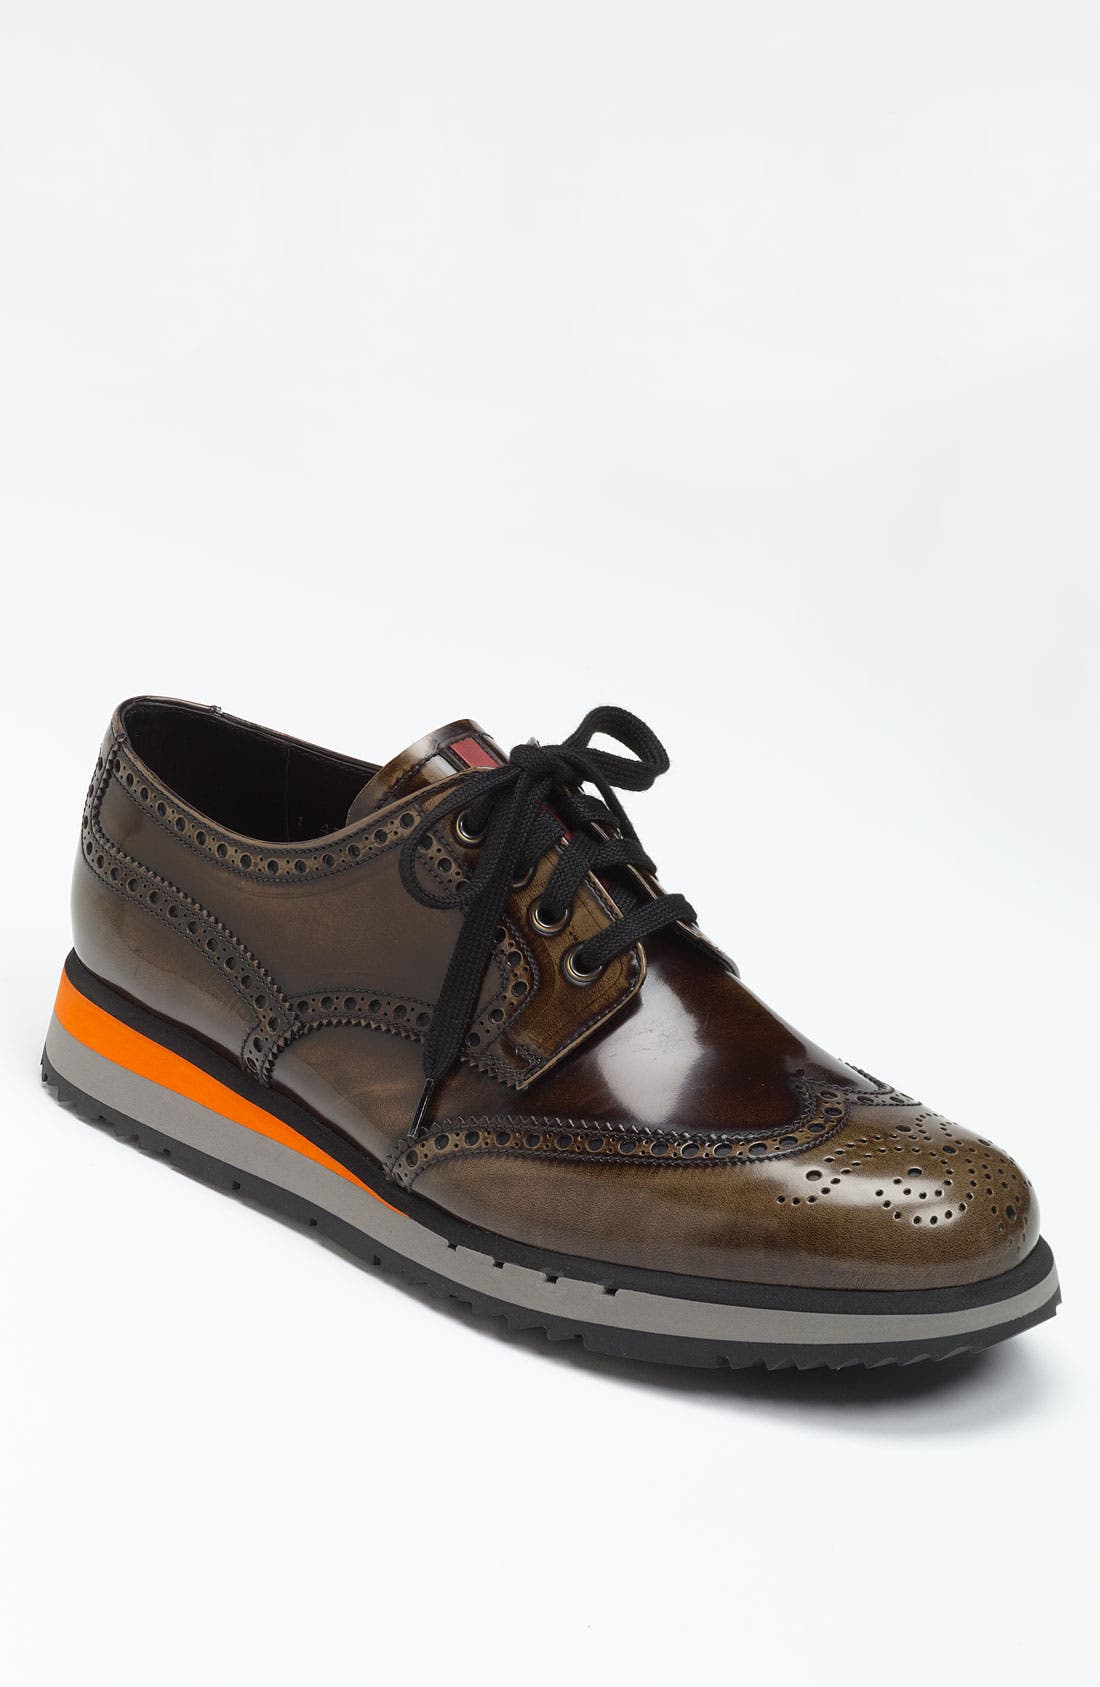 Alternate Image 1 Selected - Prada Sport Sole Wingtip